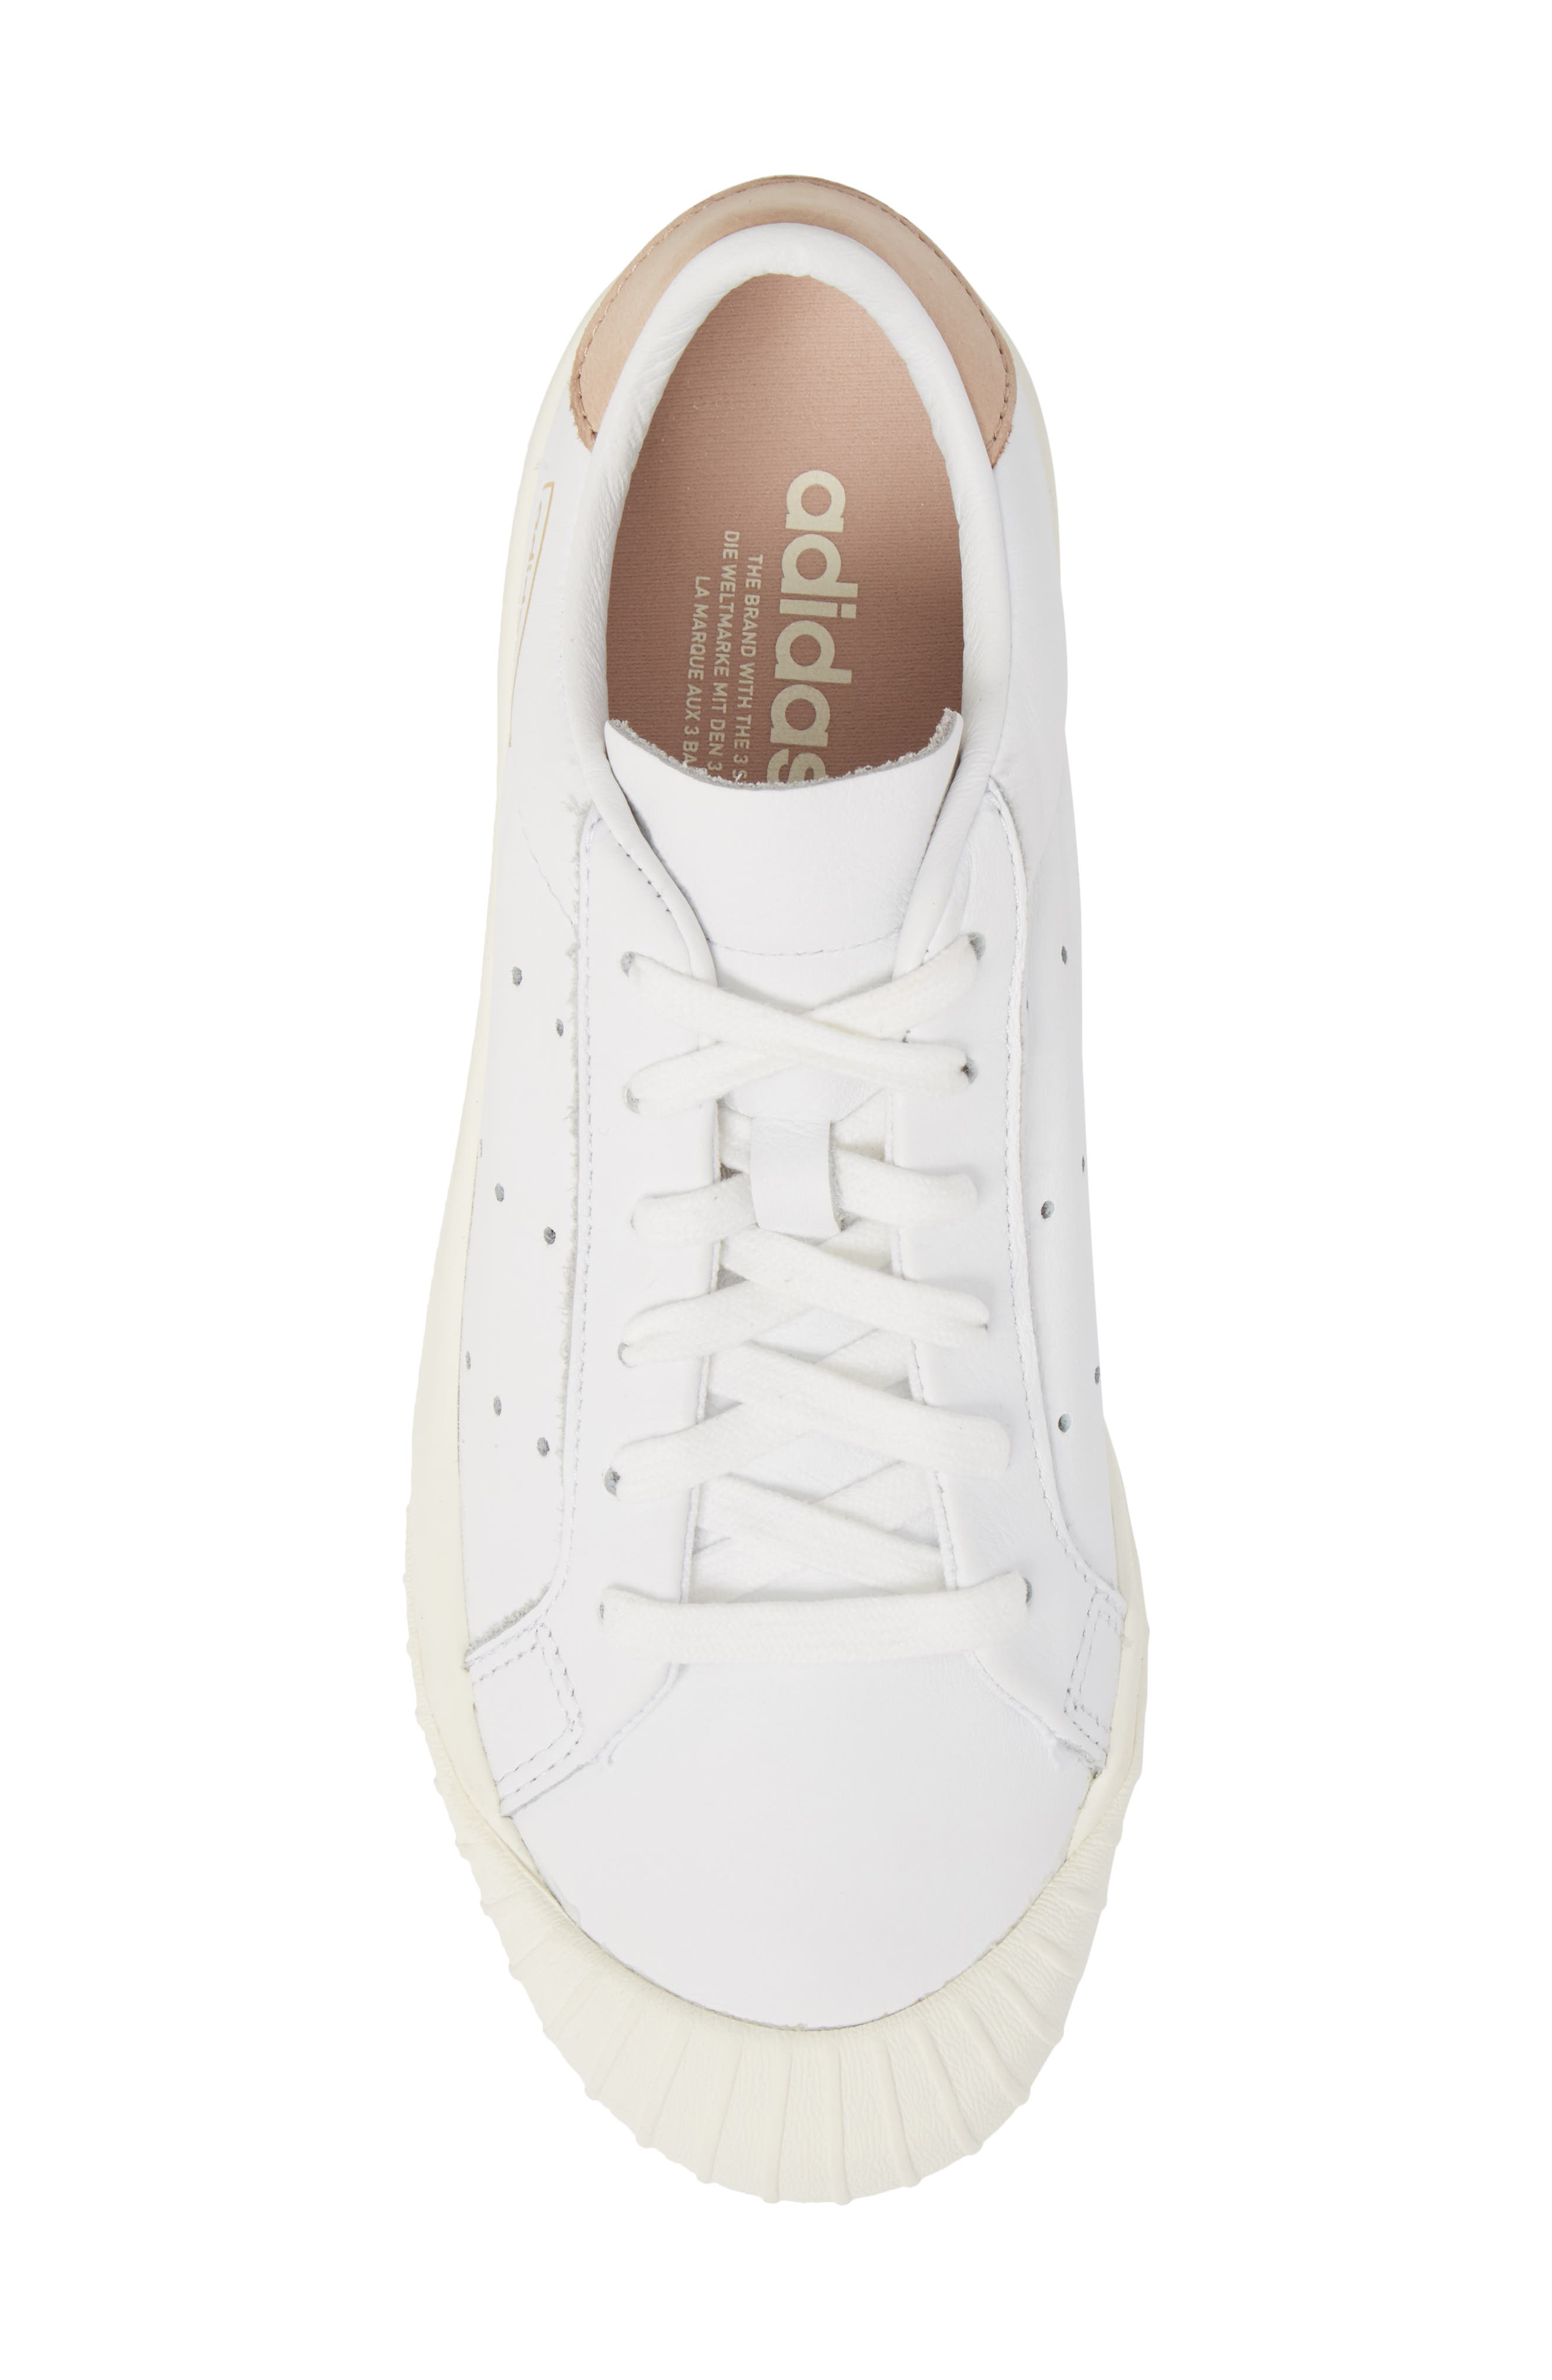 Everyn Perforated Low Top Sneaker,                             Alternate thumbnail 10, color,